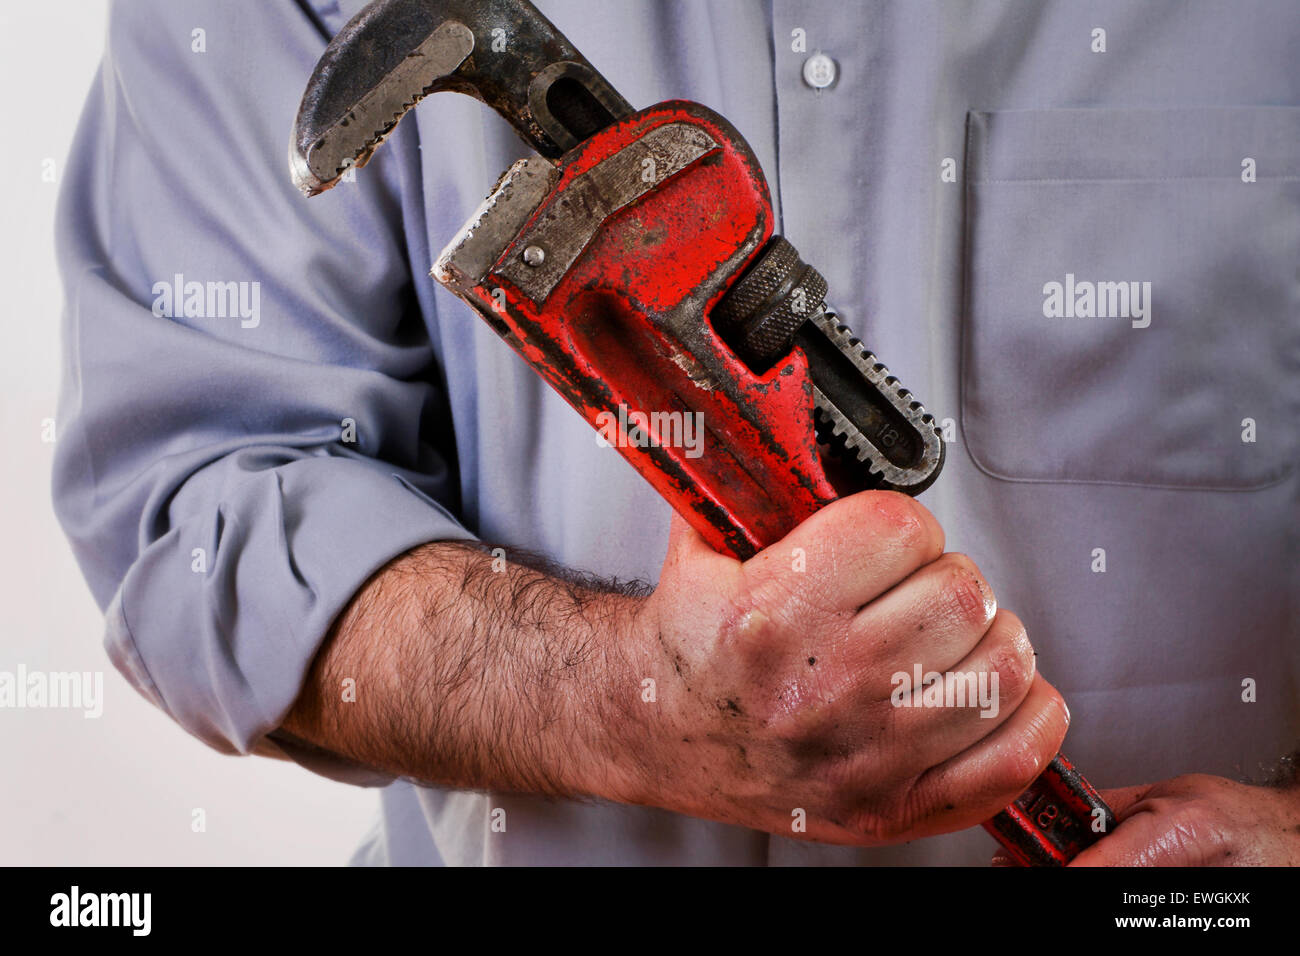 Stock image of plumber in uniform holding pipe wrench. - Stock Image